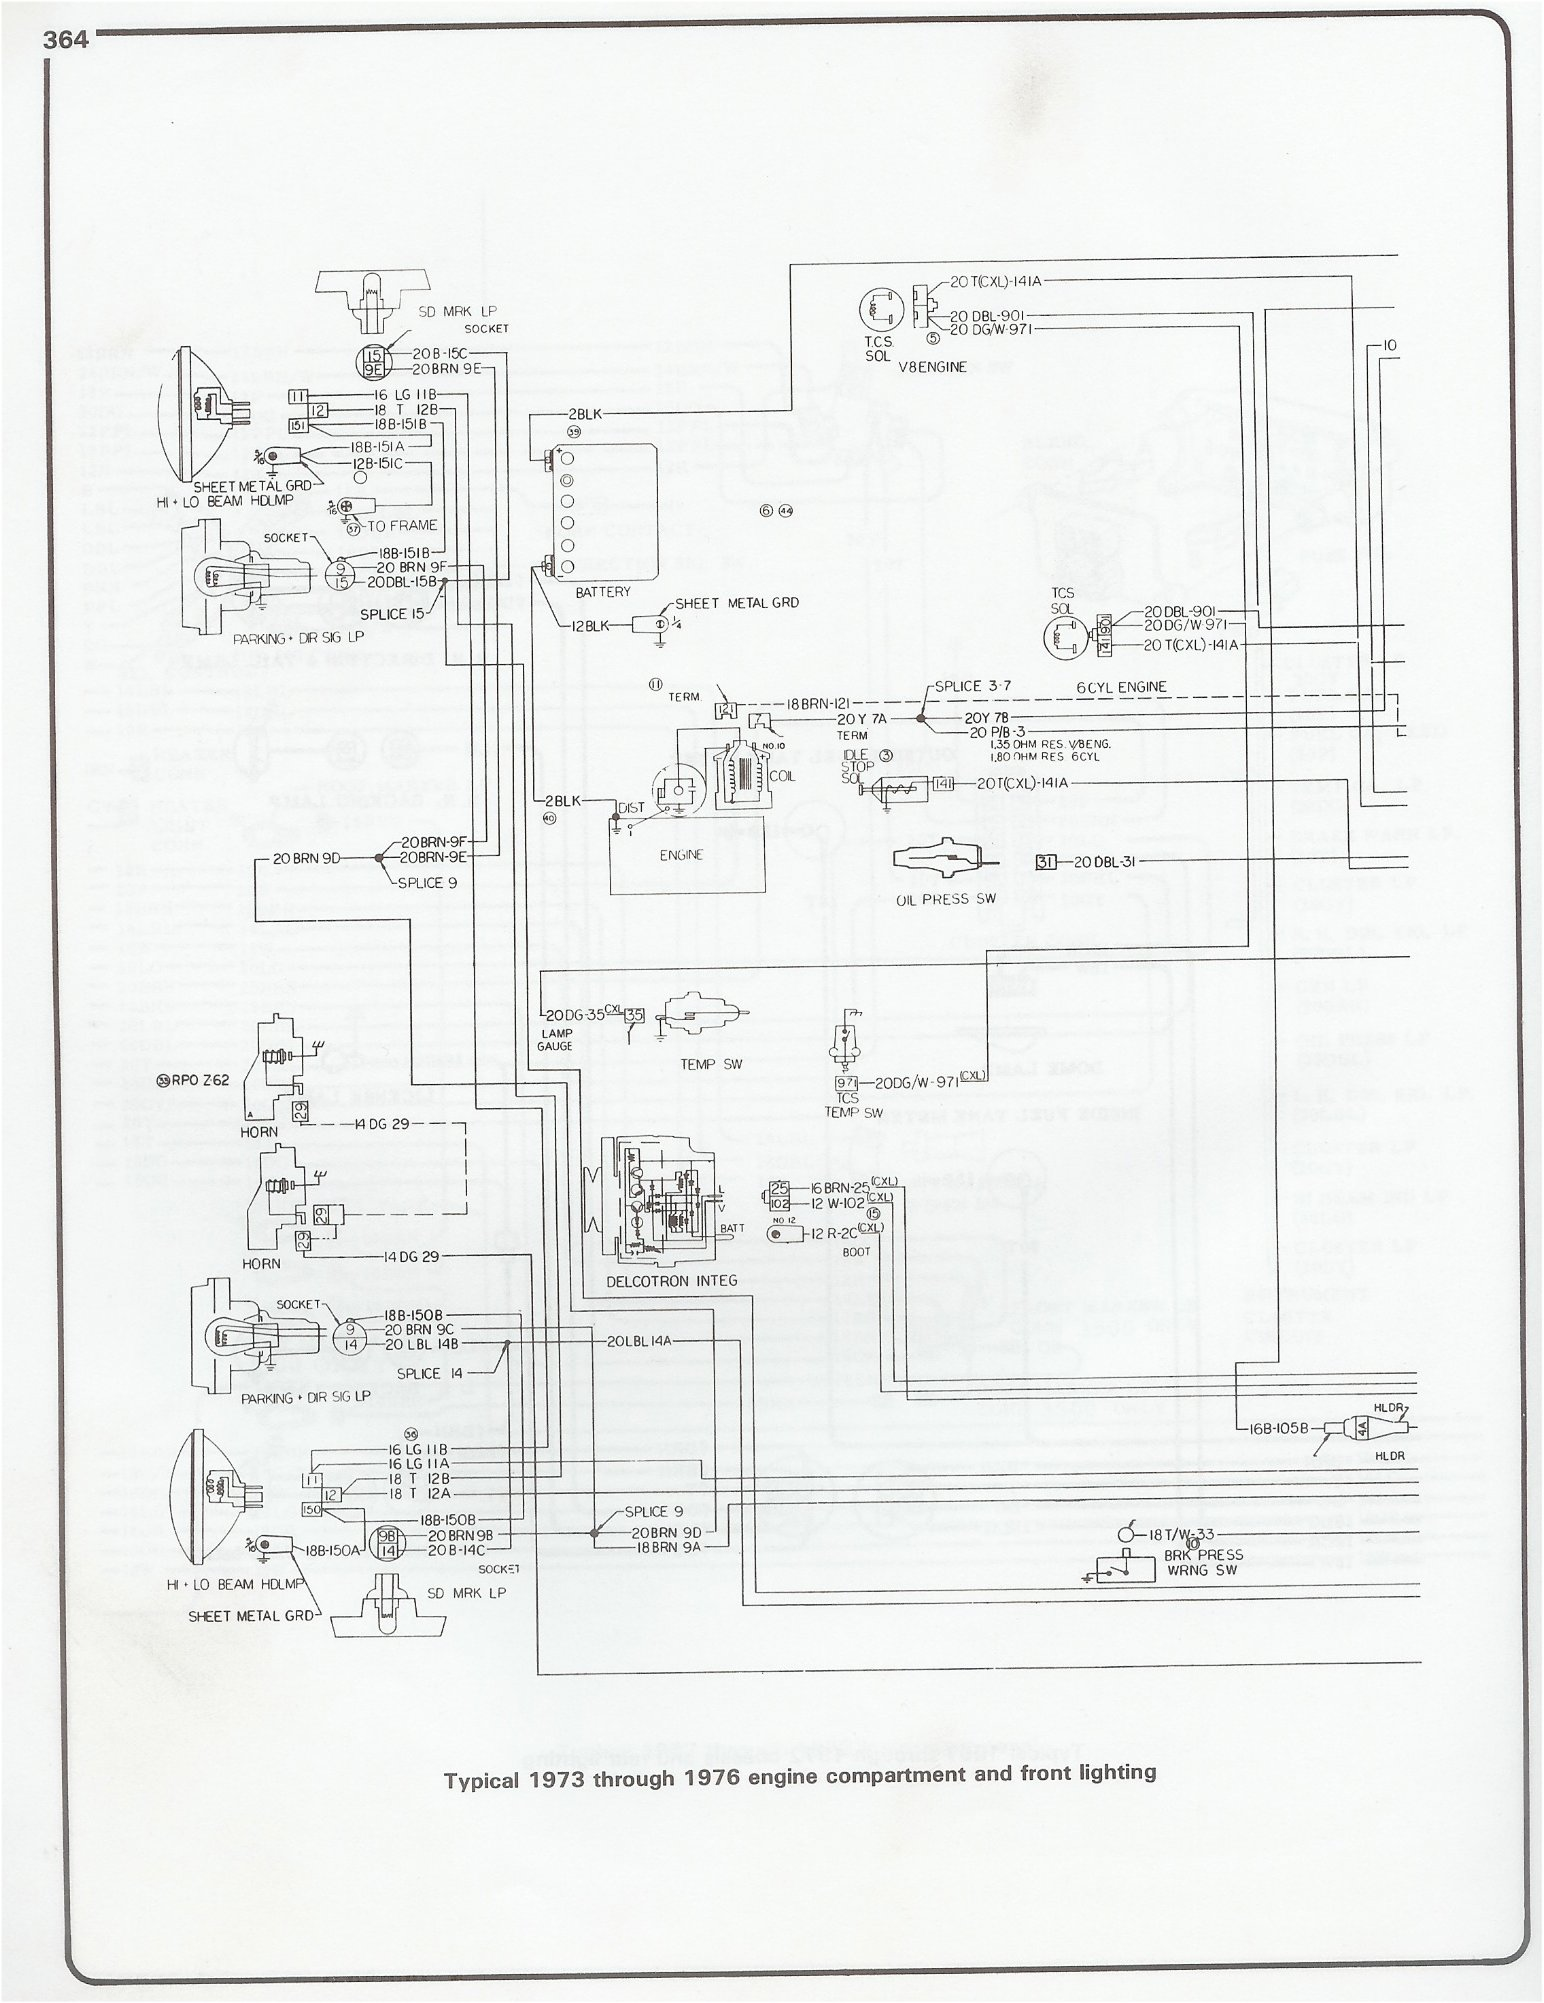 1957 Chevy 3200 Truck Brake Light Wiring Diagram